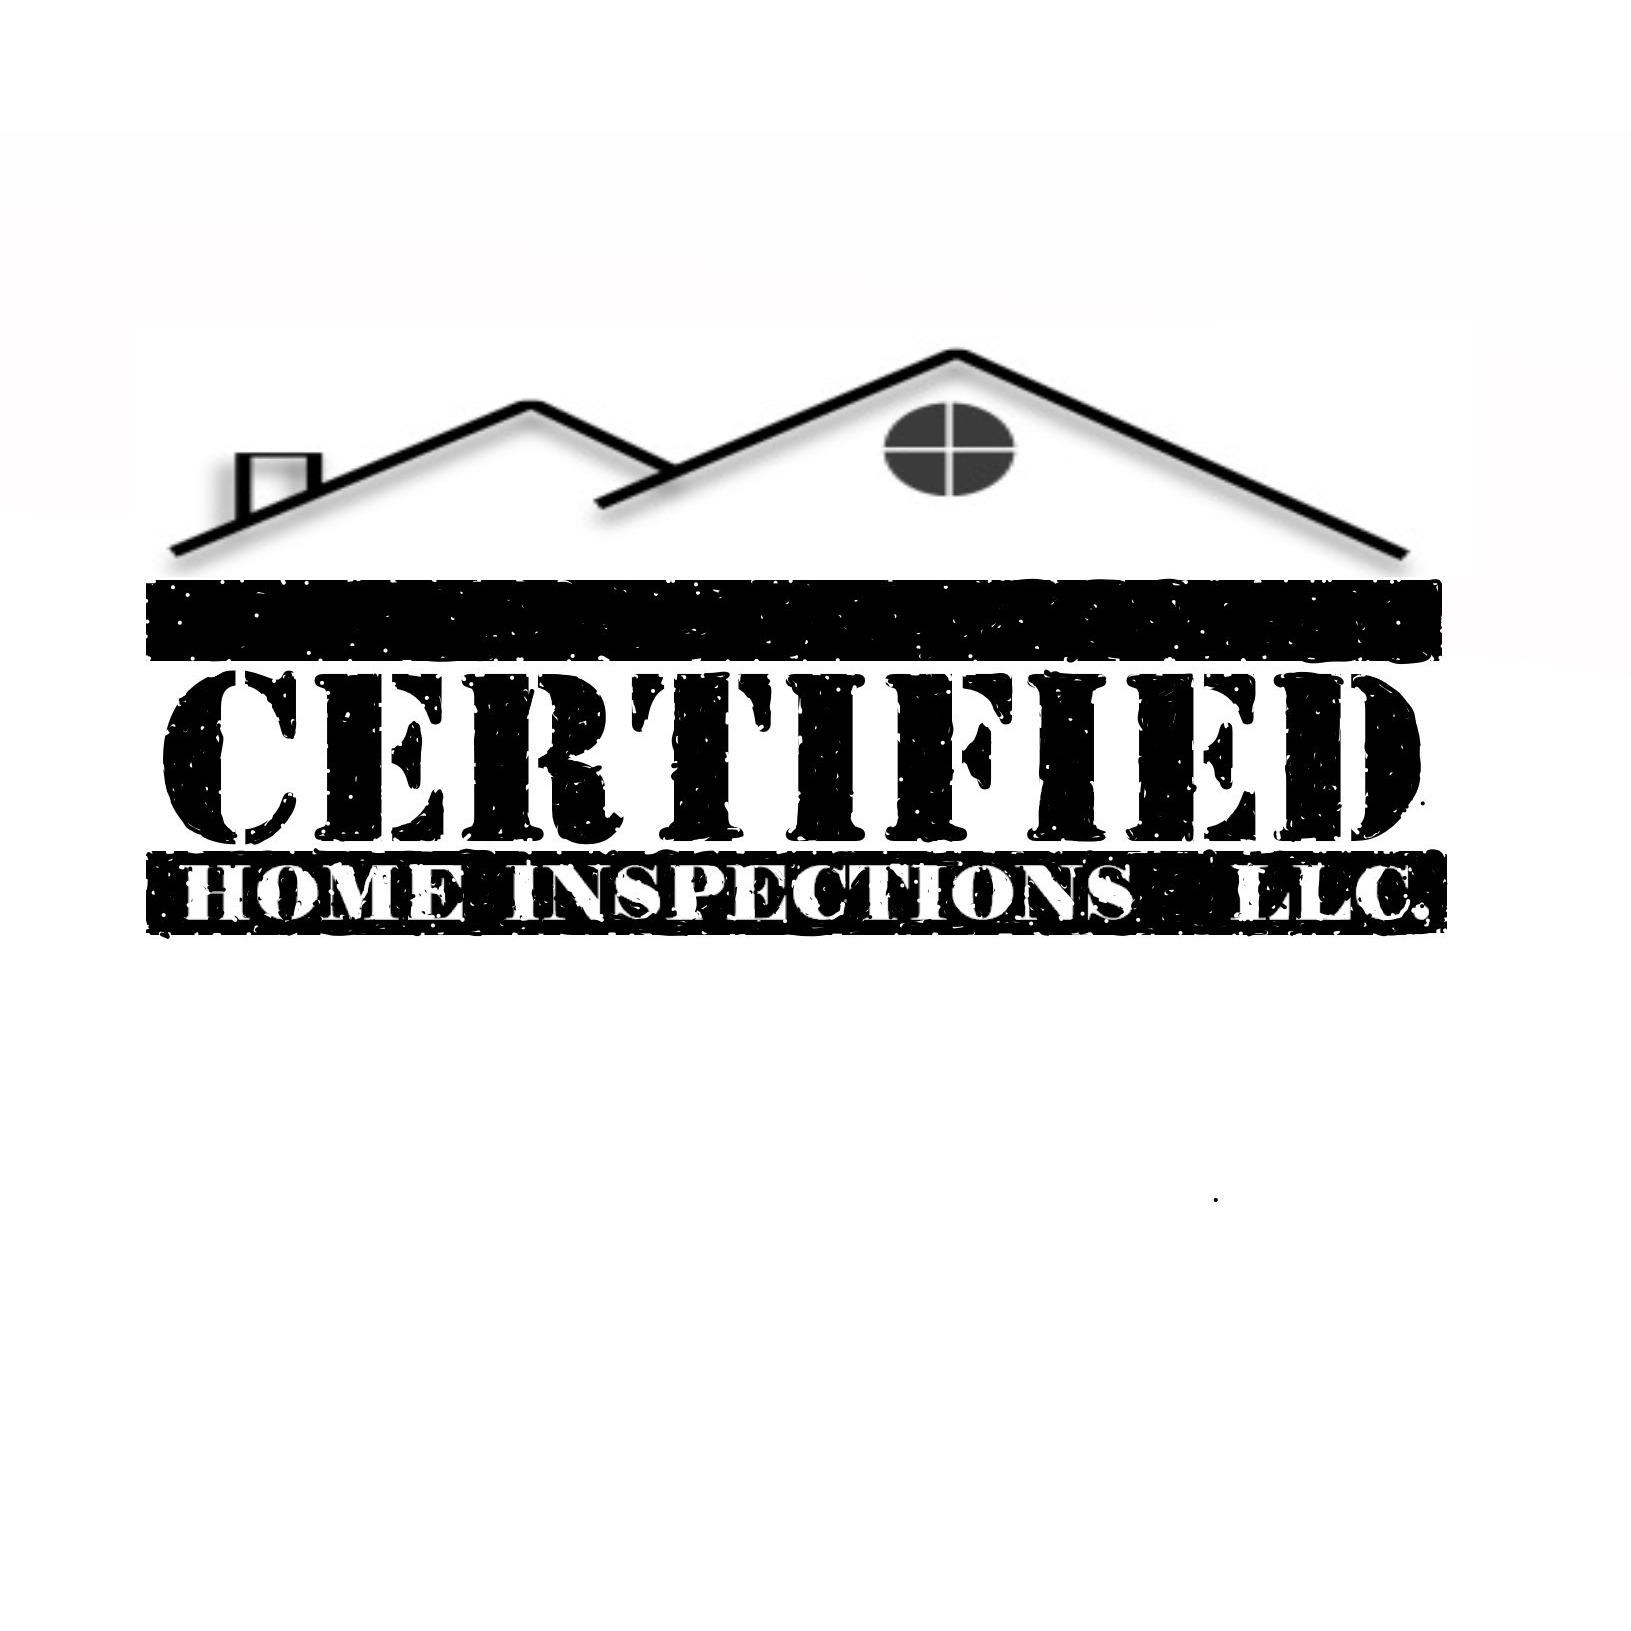 Certified Home Inspections LLC